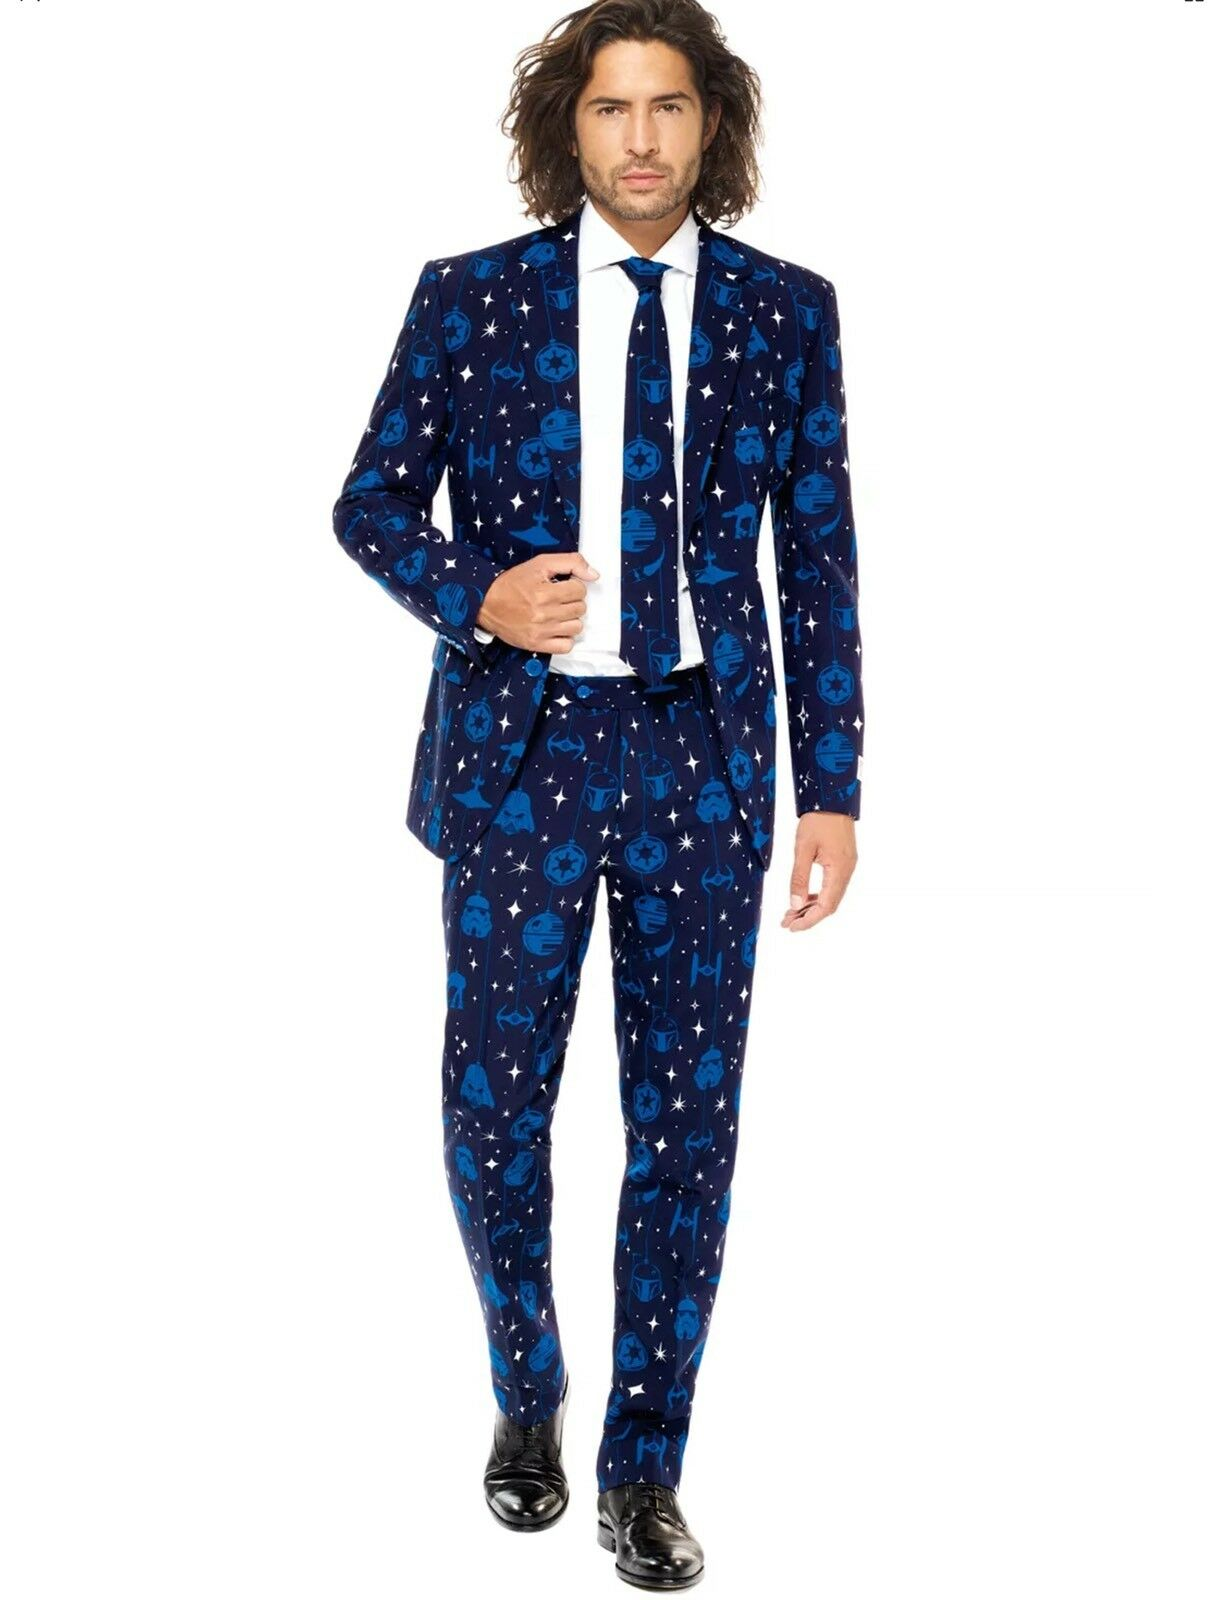 50R NEW OPPO SUITS STAR WARS STARRY SIDE  Herren SUIT WITH TIE 42X34